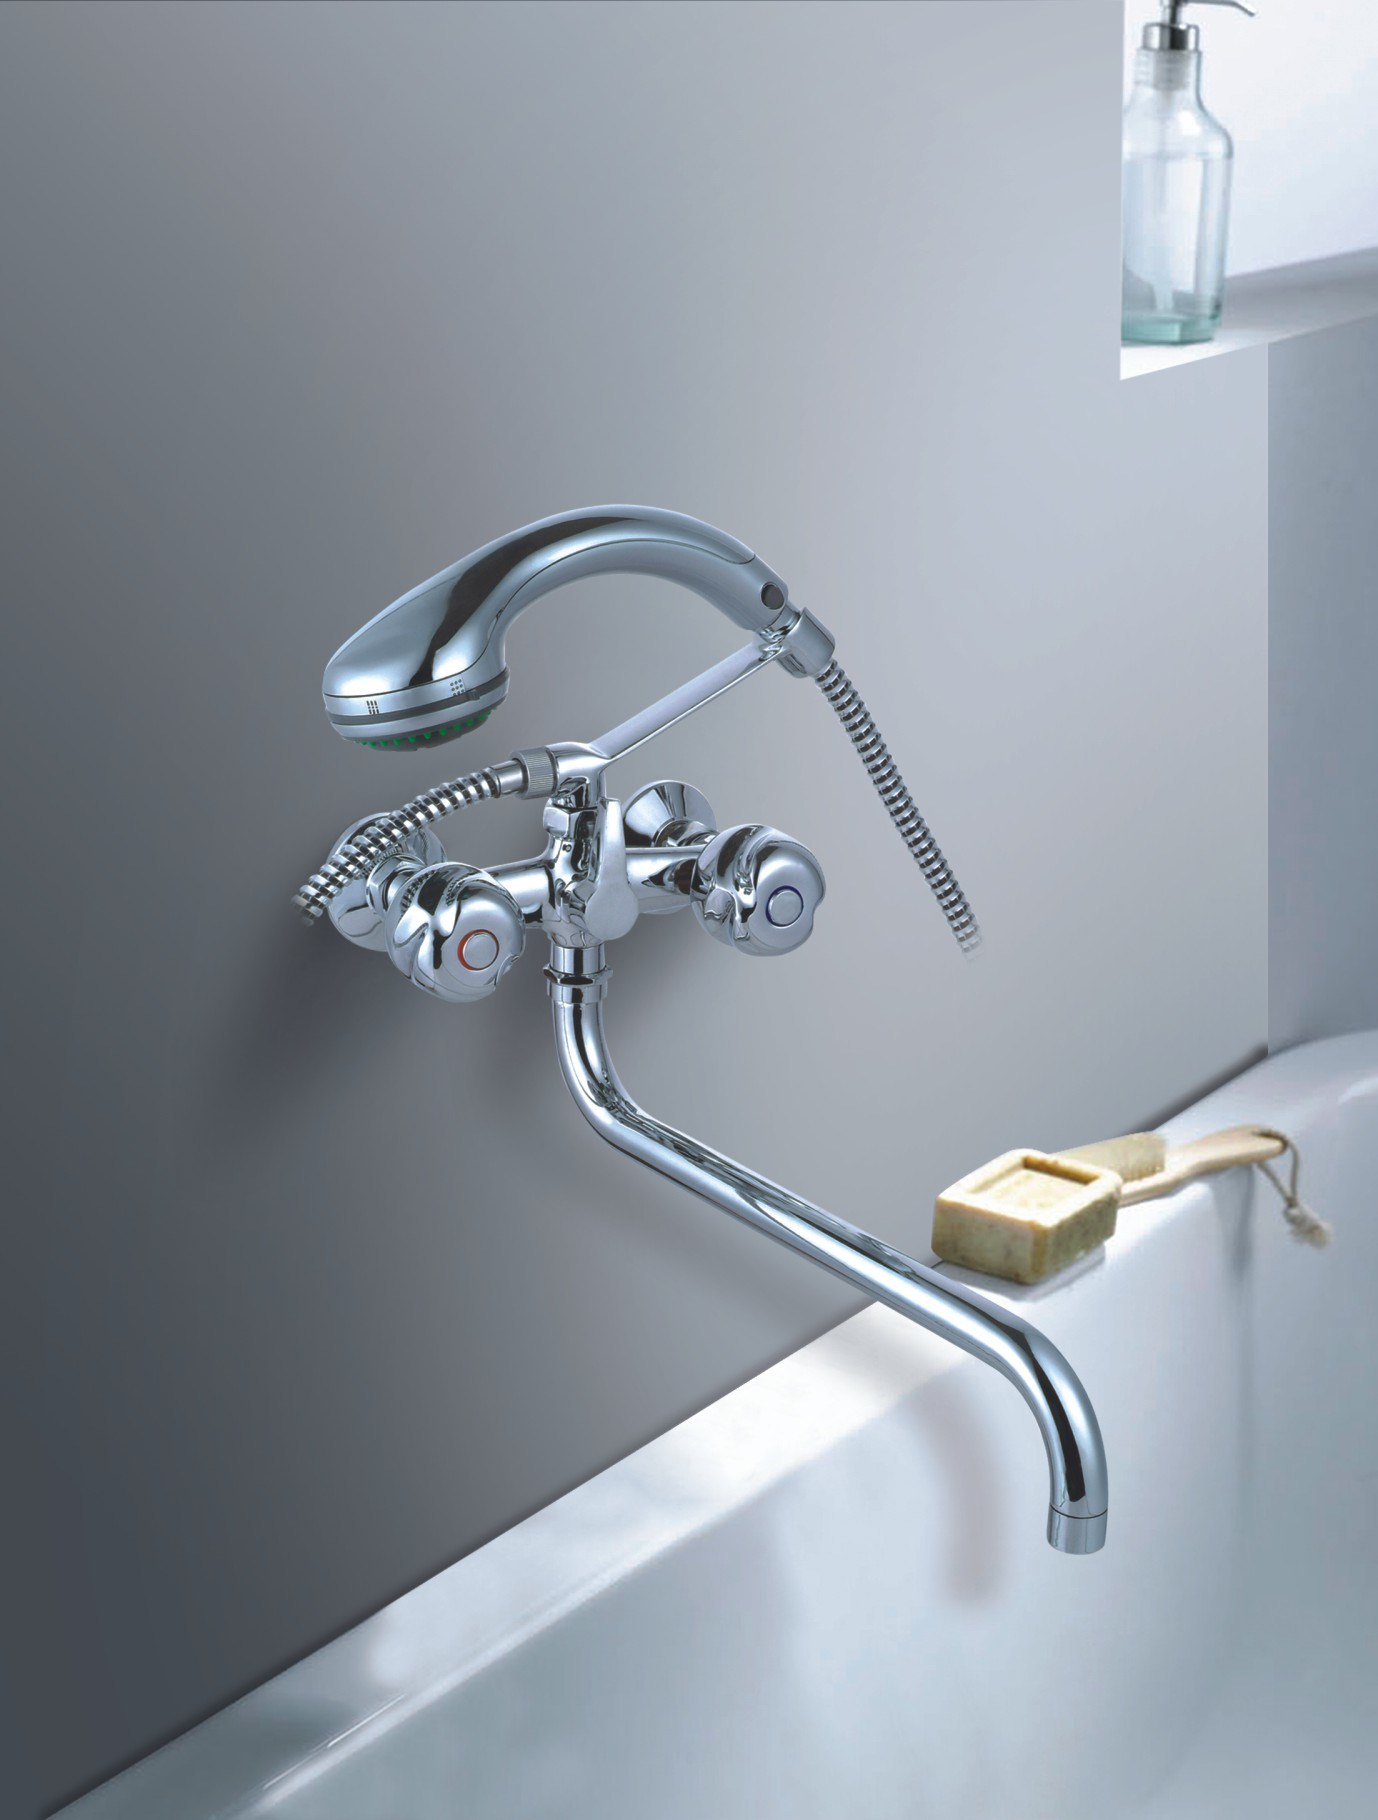 Tub and Shower Stem Compression Faucet Repair and Installation